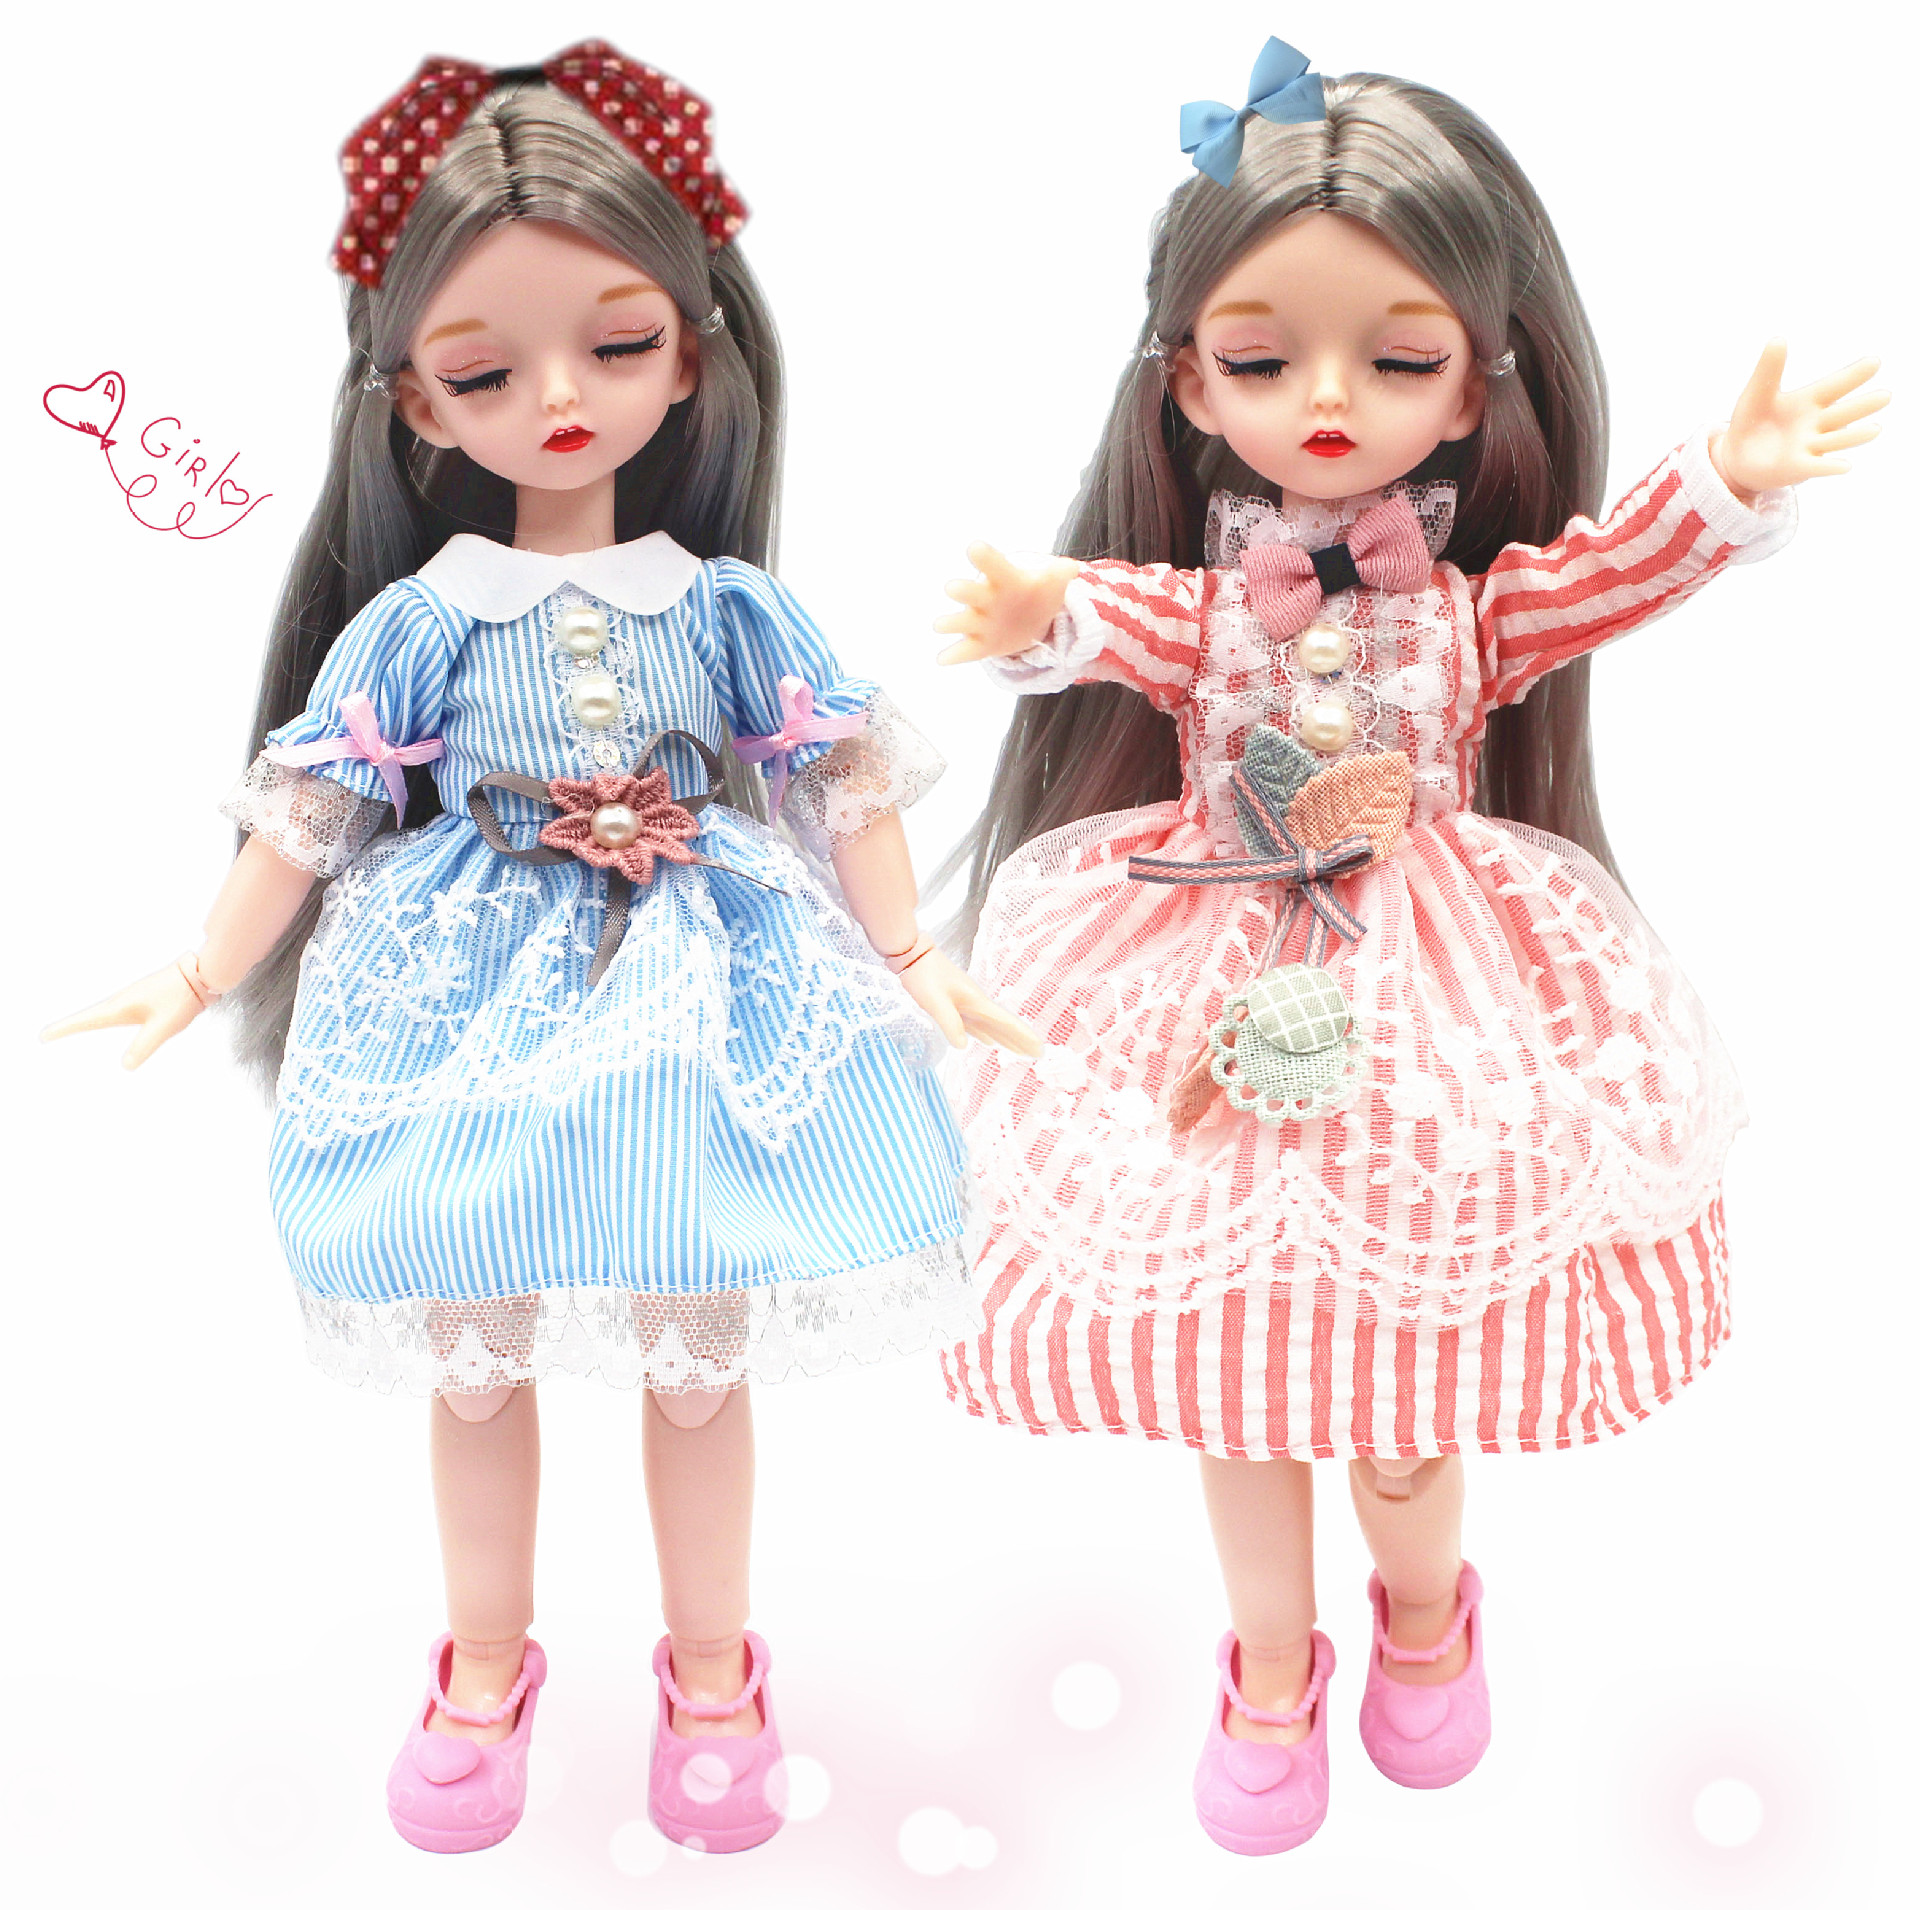 <font><b>BJD</b></font> Doll Accessories 12 Inch Doll Dress /Overalls for Sleep Series <font><b>Bjd</b></font> <font><b>1/6</b></font> <font><b>Clothes</b></font> Dress Up Dolls Toys for Children Girls image